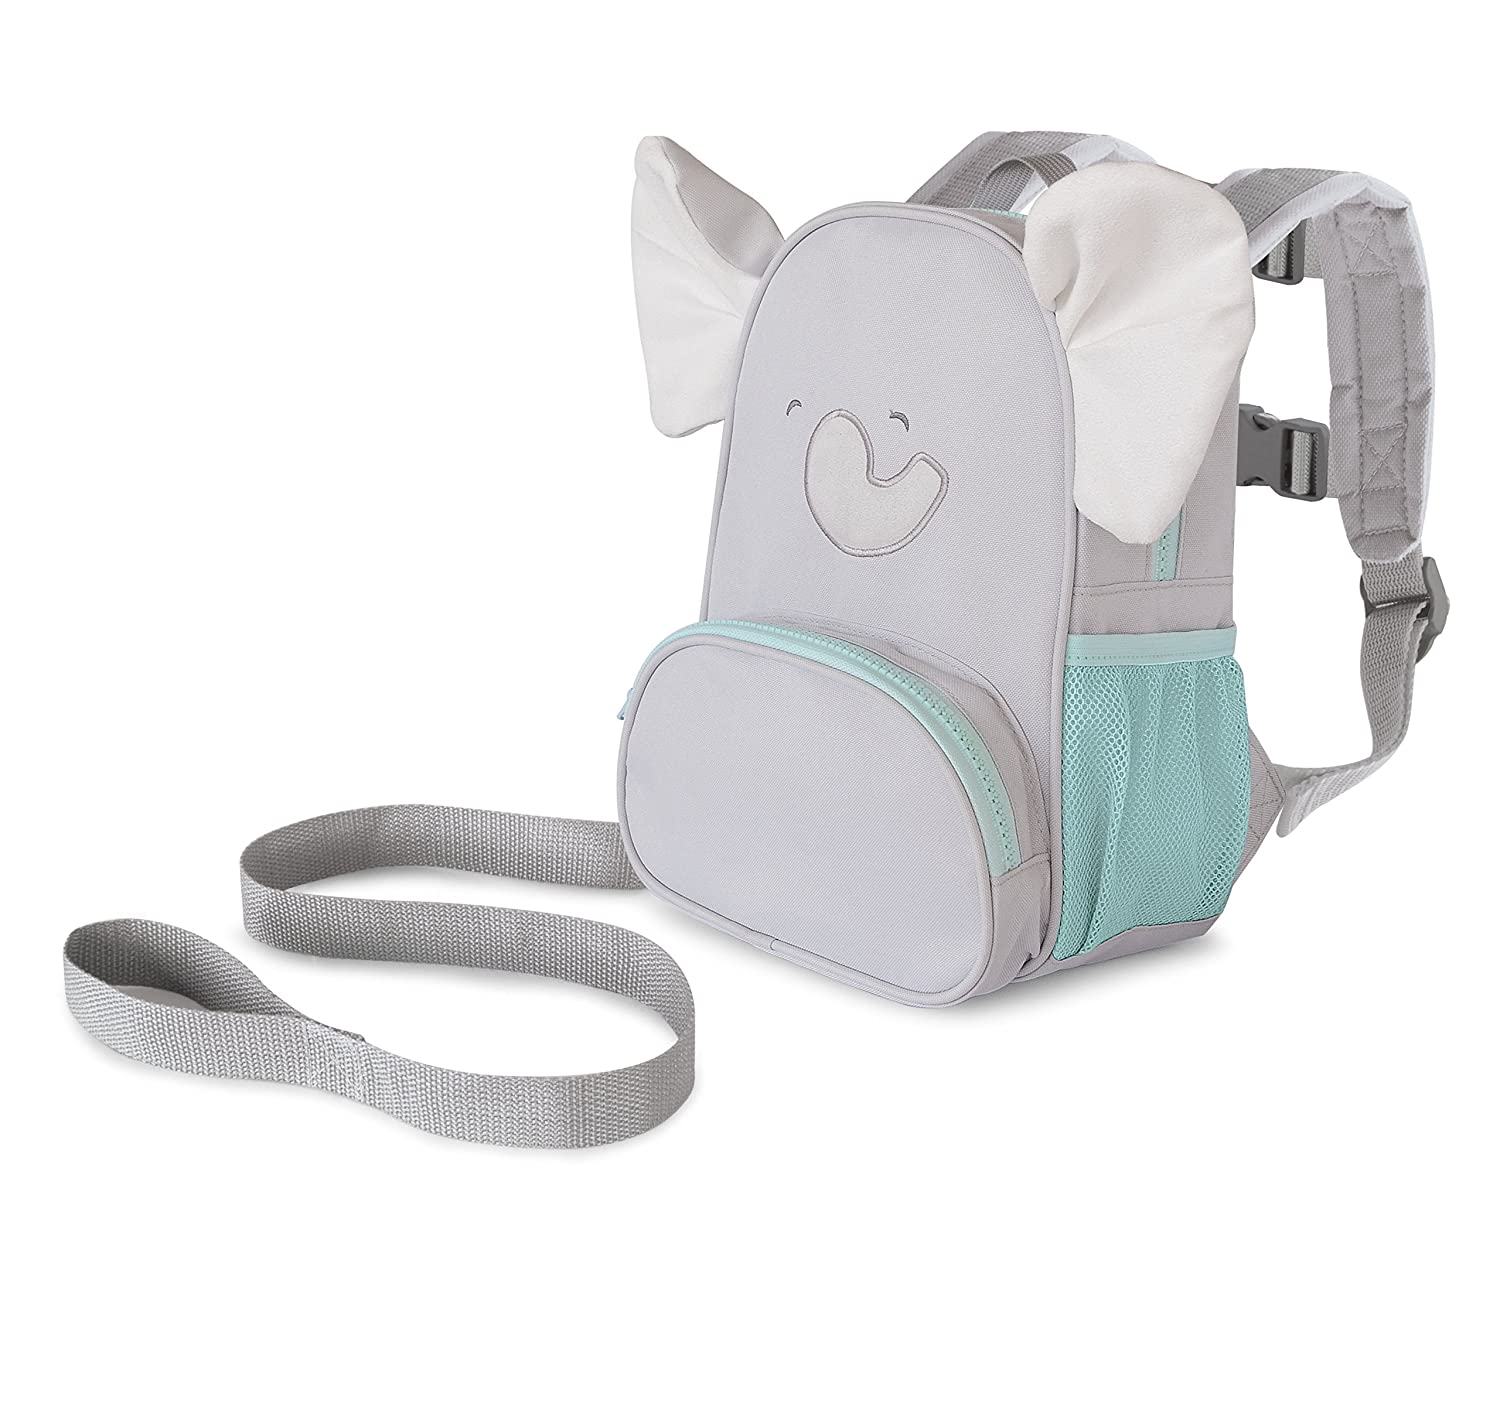 Carter's Toddler Safety Harness, Animal Elephant Backpack, Grey/Turquoise Goldbug CR03712-1SZ-AMZ